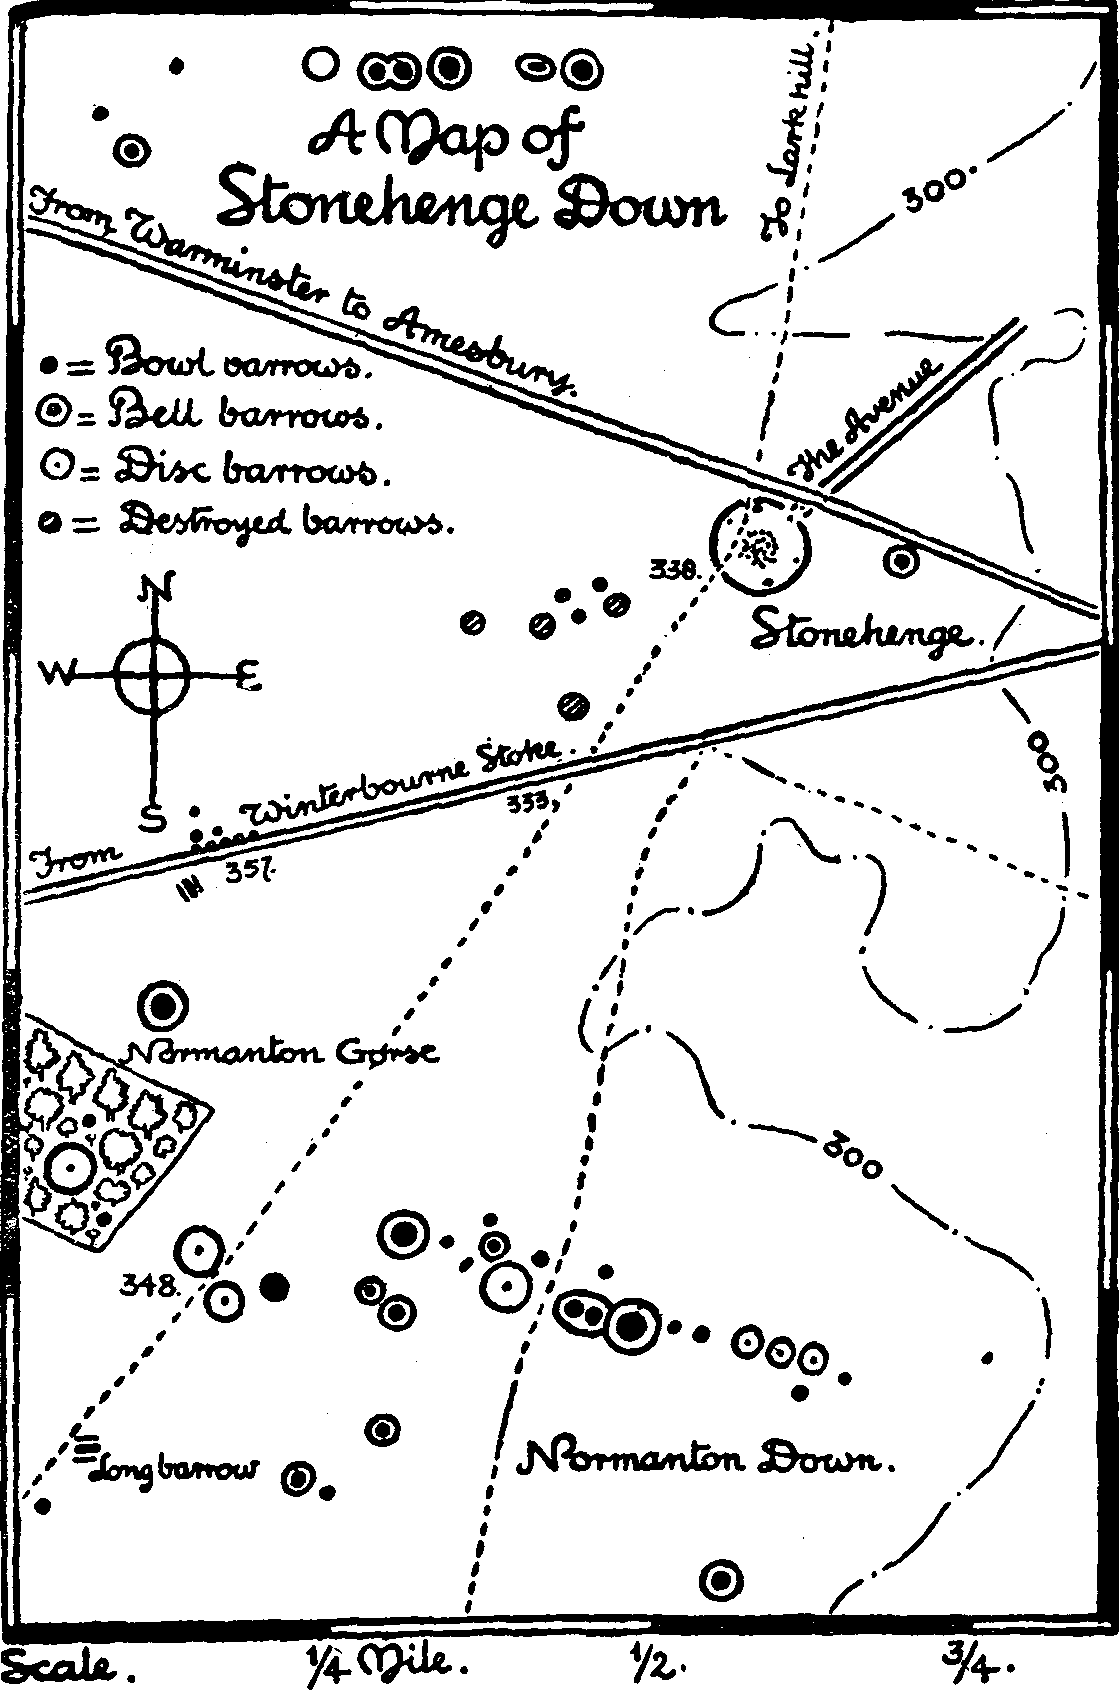 Map of Stonehenge Down Salisbury Plain